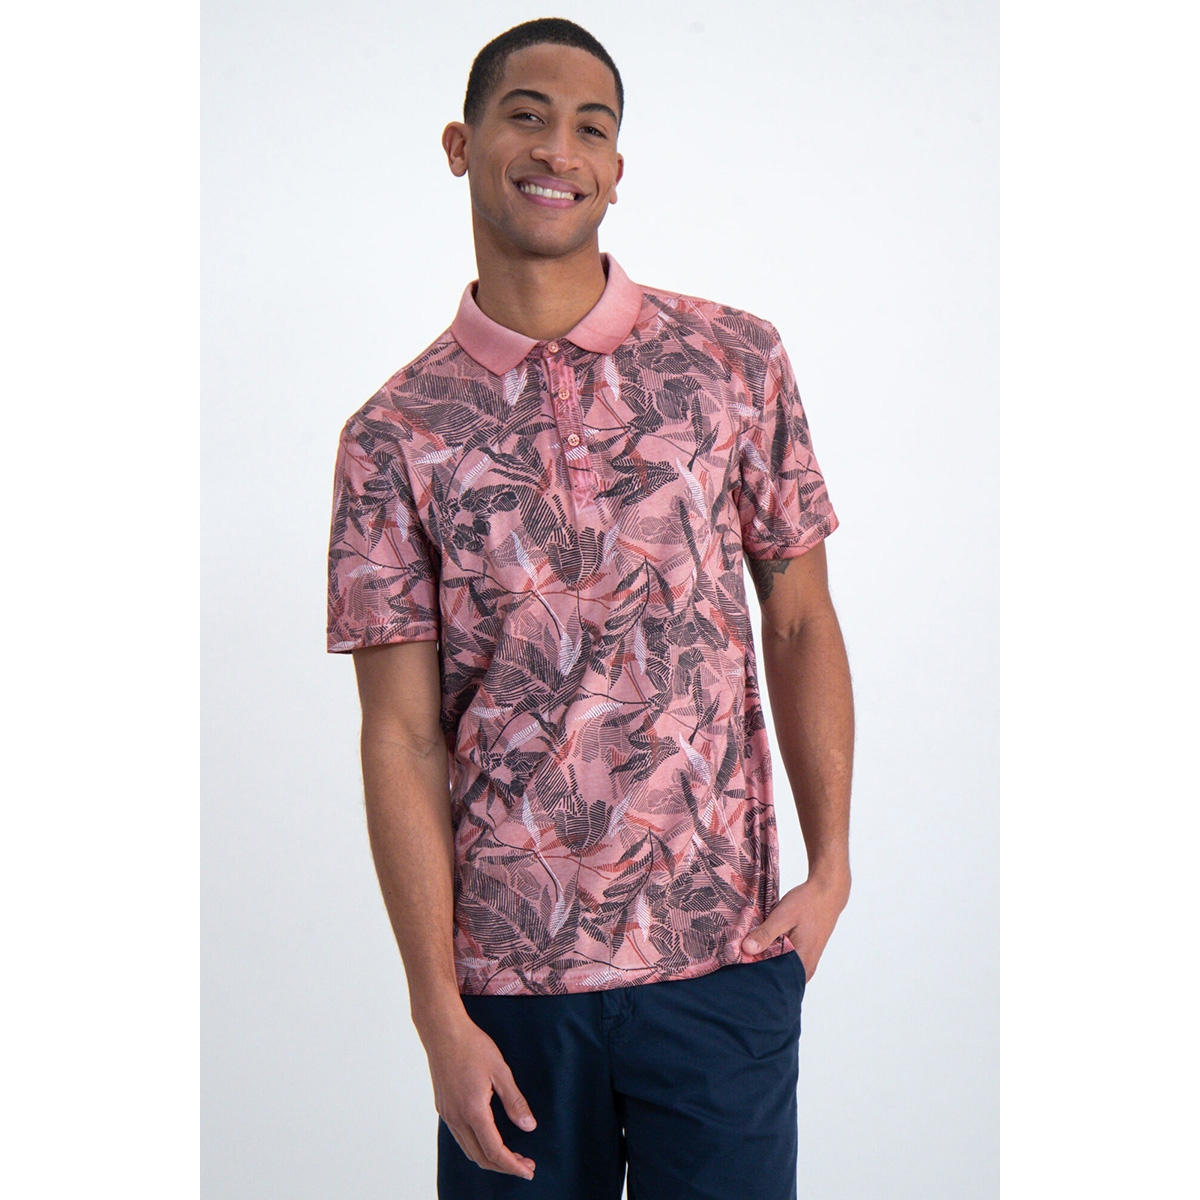 polo met all over print n01221 garcia polo 3068 coral reef